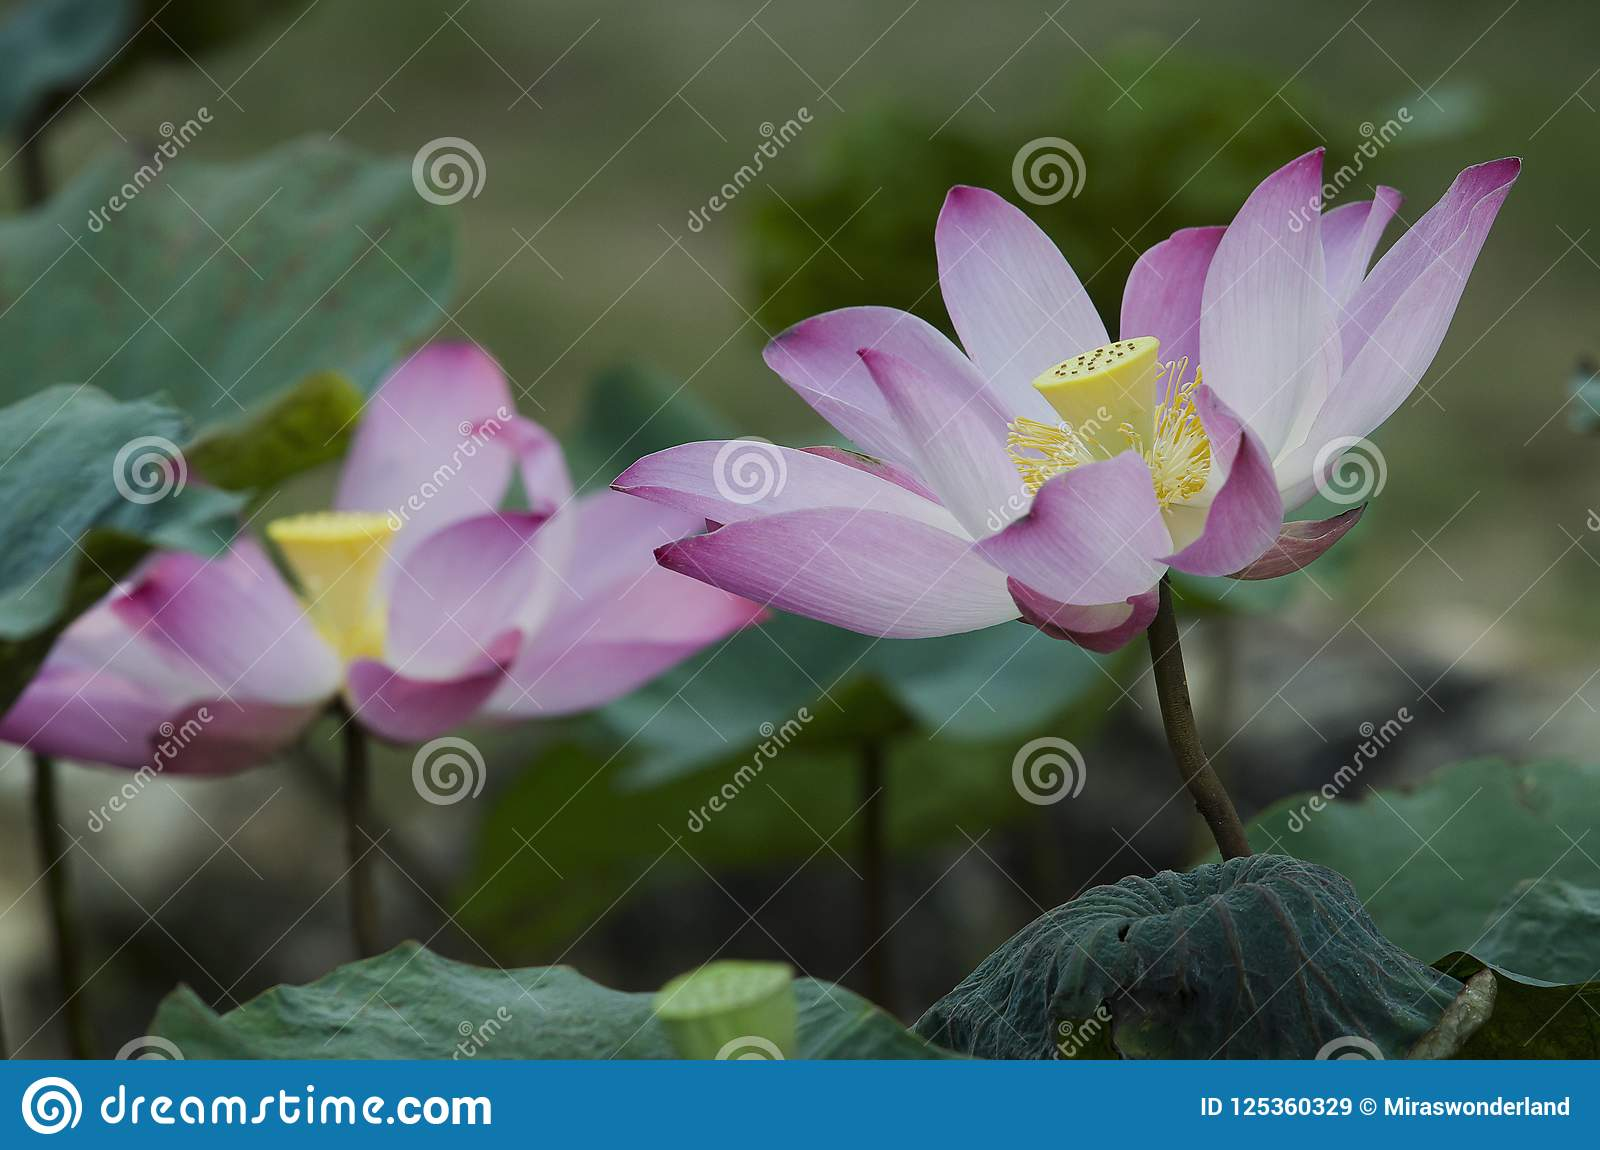 Pink blooming lotus flowers in a pond stock image image of download pink blooming lotus flowers in a pond stock image image of botanical pink izmirmasajfo